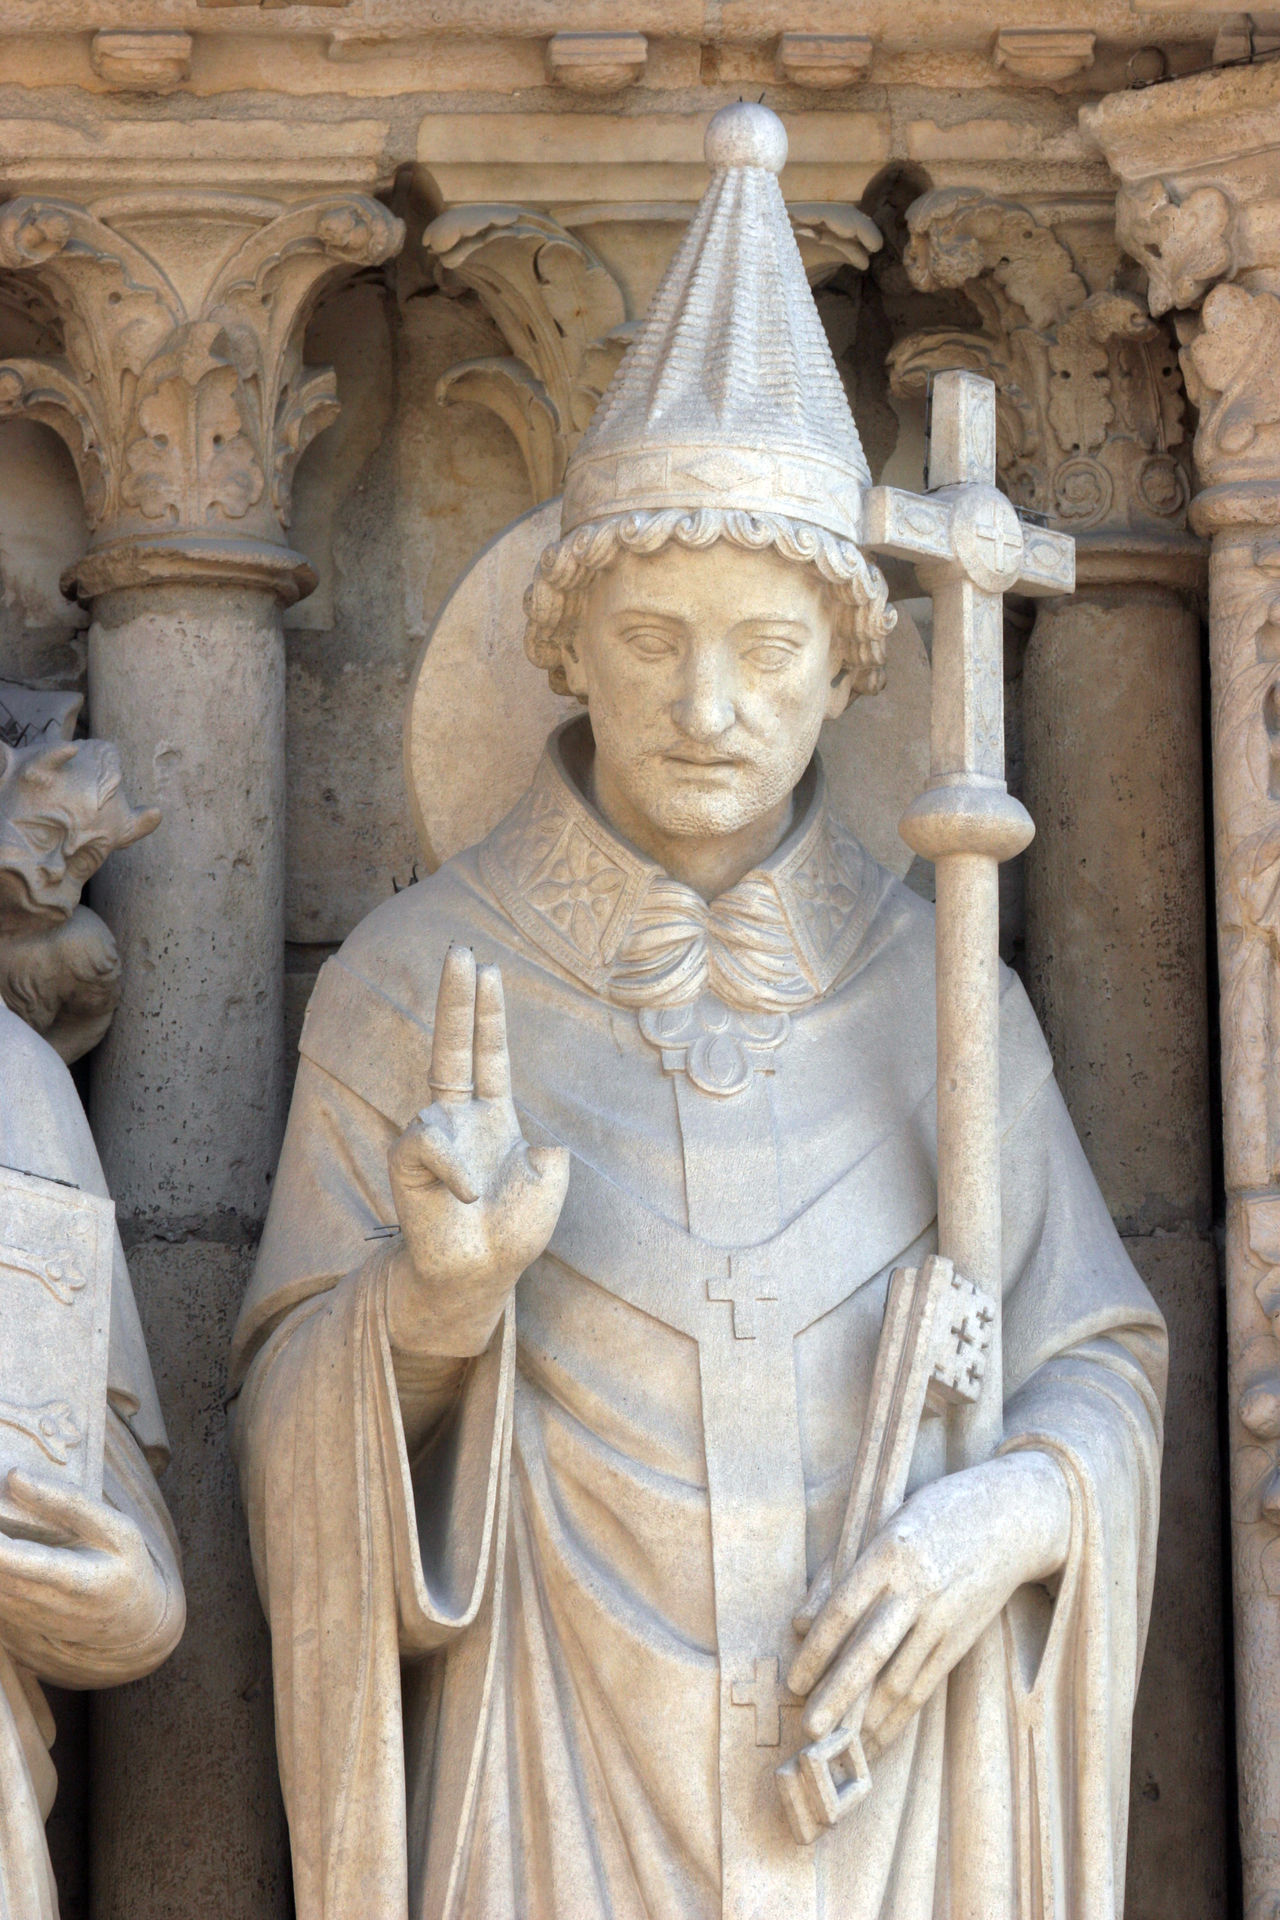 Pope Saint Sylvester, Notre Dame Cathedral, Paris, Portal of the Virgin Architecture Art Carved Cathedral Culture Façade Faith Figure France Landmark Medieval Monument Notre Dame De Paris Paris Pope Portal Religion Religious  Saint Sculpture Spirituality Statue Stone Sylvester Worship